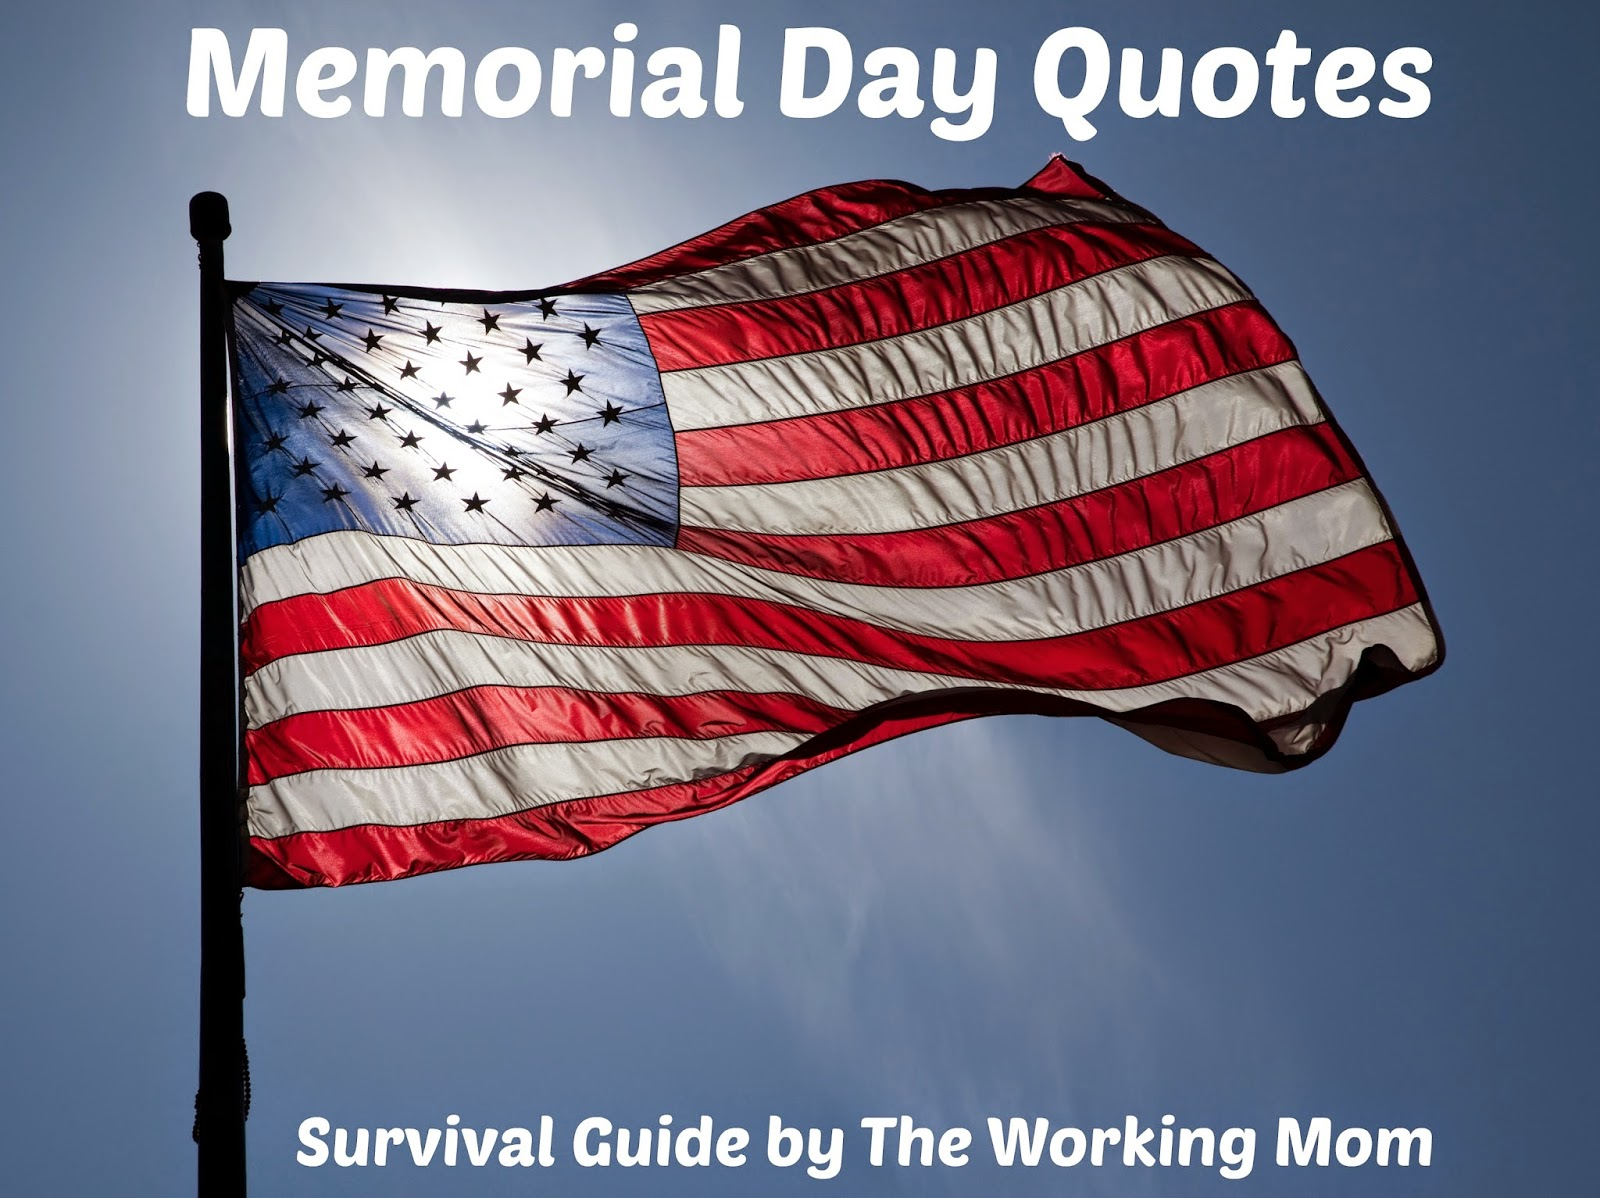 Survival Guide By The Working Mom Memorial Day Quotes